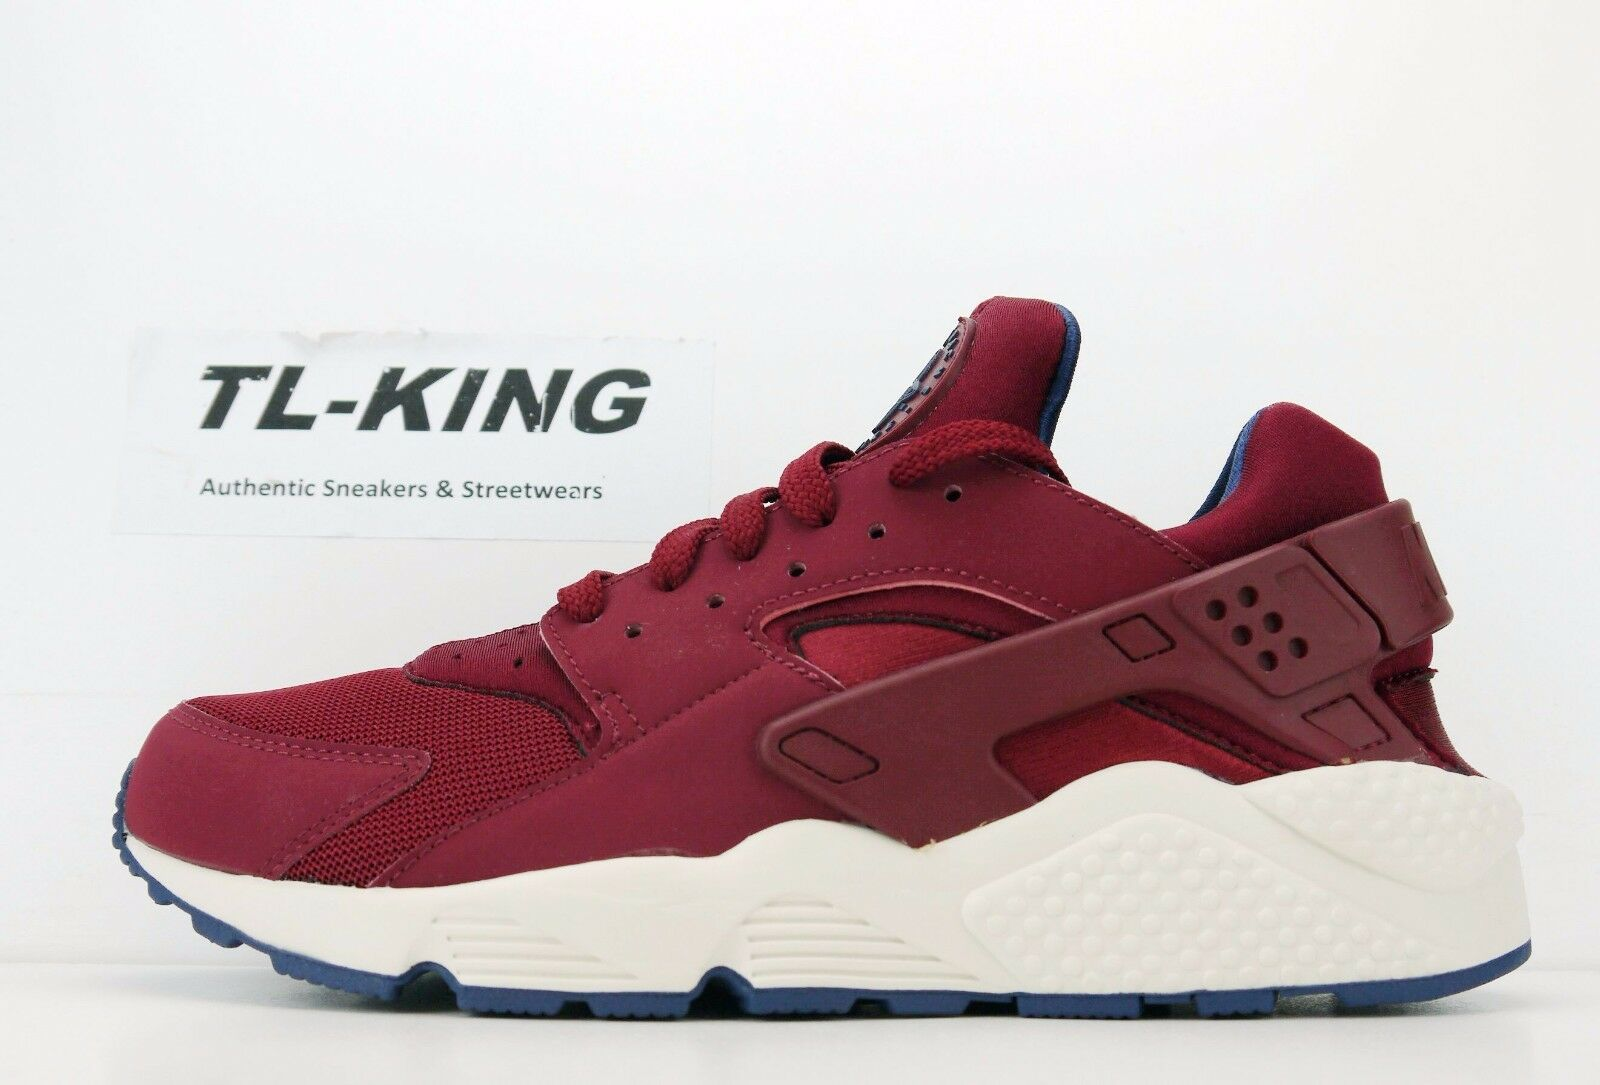 Nike Air Navy Huarache Team Red Navy Air Sail Trainer Sneaker 318429 608 Msrp $110 BW ff1416